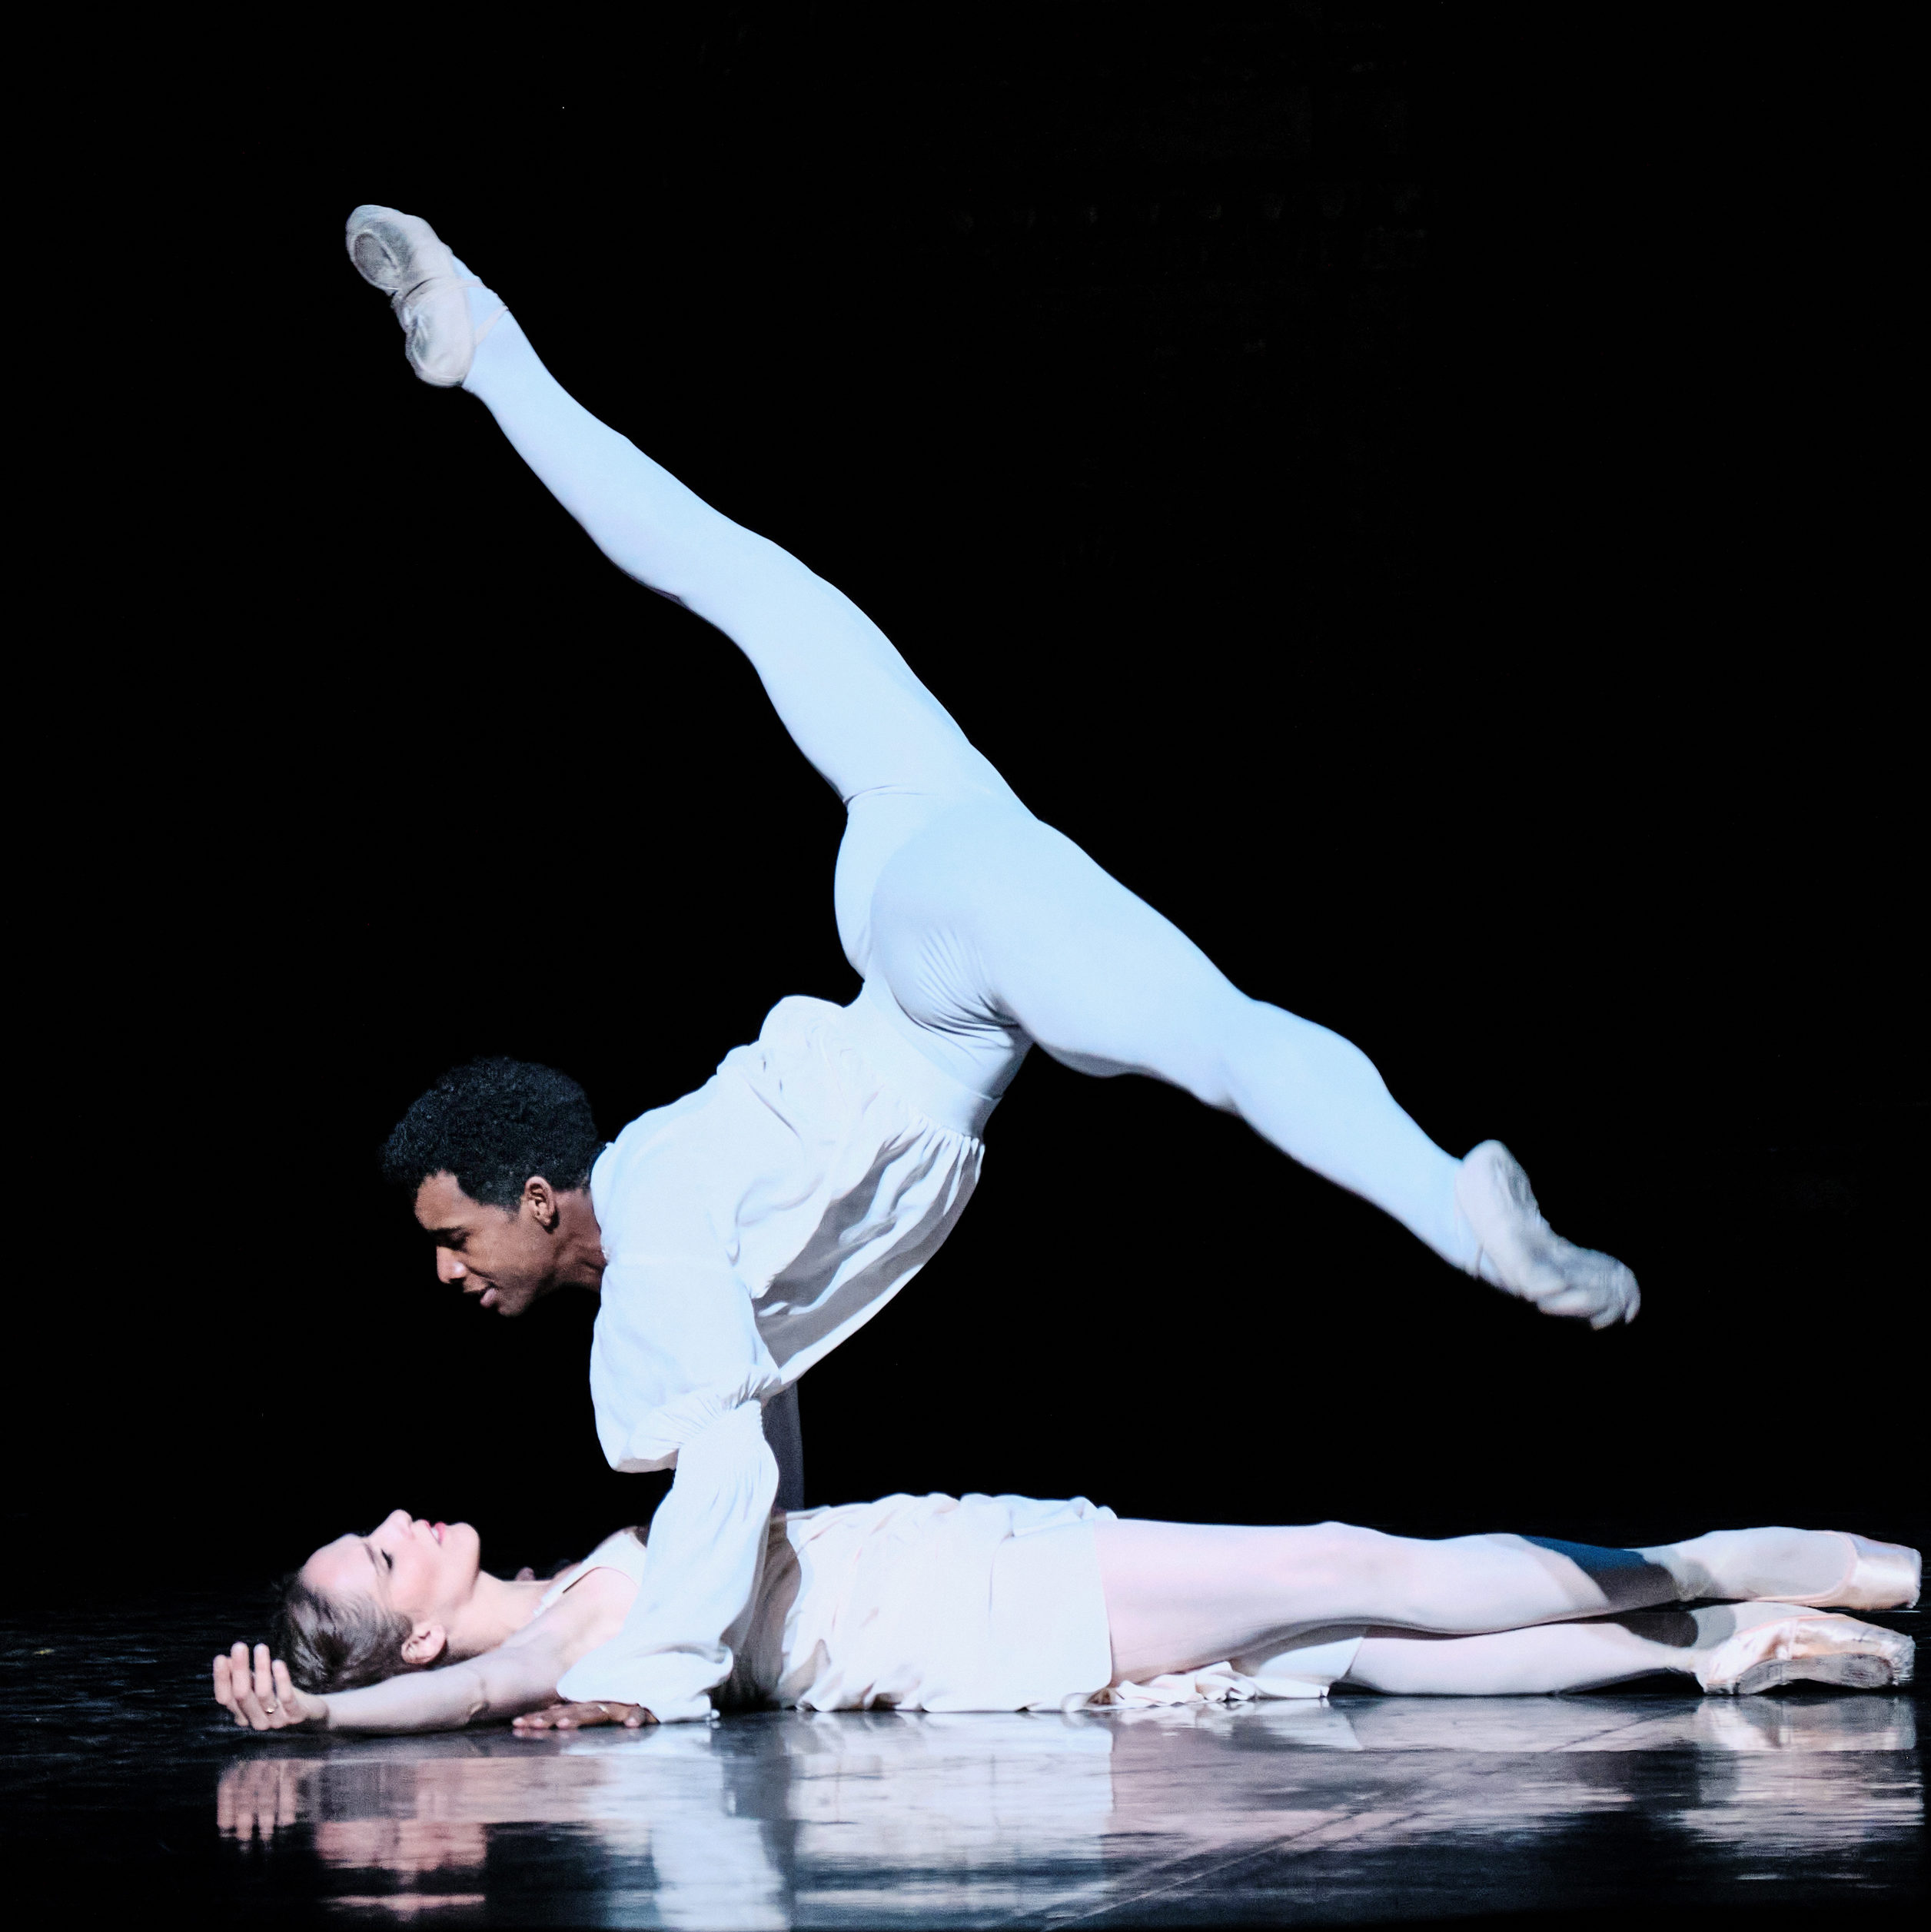 Osiel Gouneo and Valentine Colasante, in white costumes, perform onstage. Gouneo is in a split position balanced on his hands, looking at Colasante, who is lying on the stage beneath him.